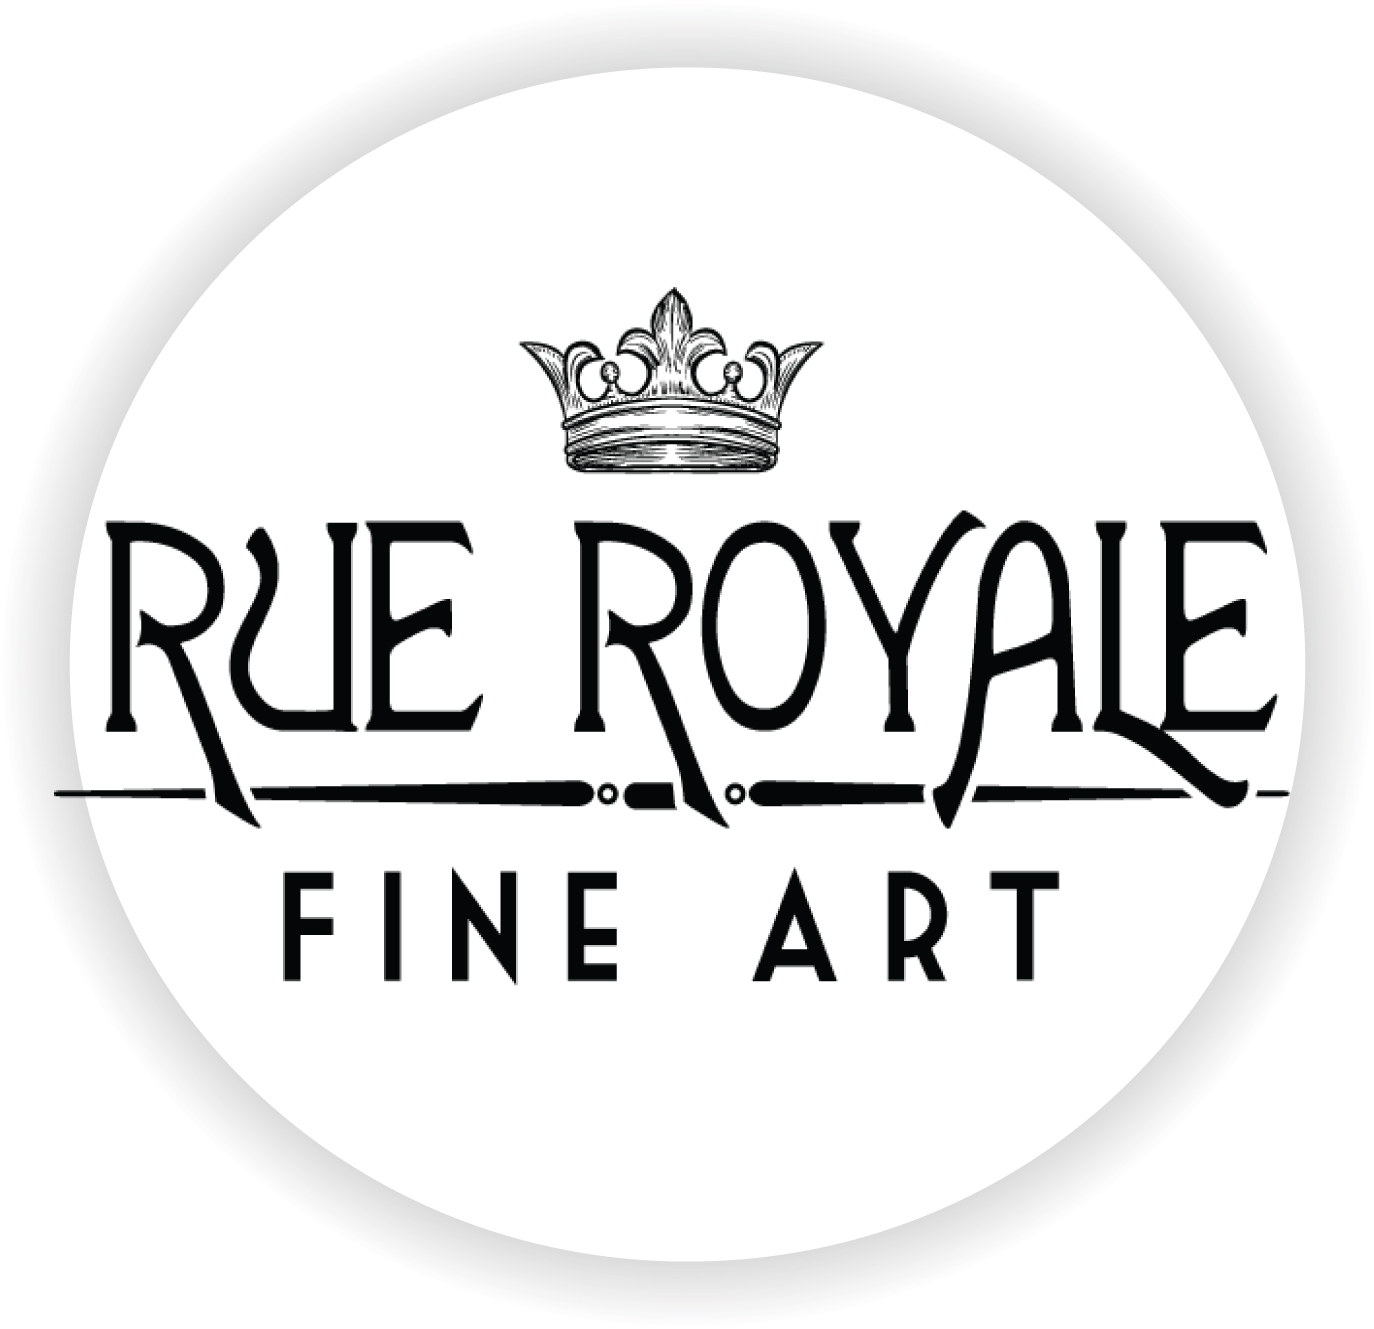 More Rue Royale Products